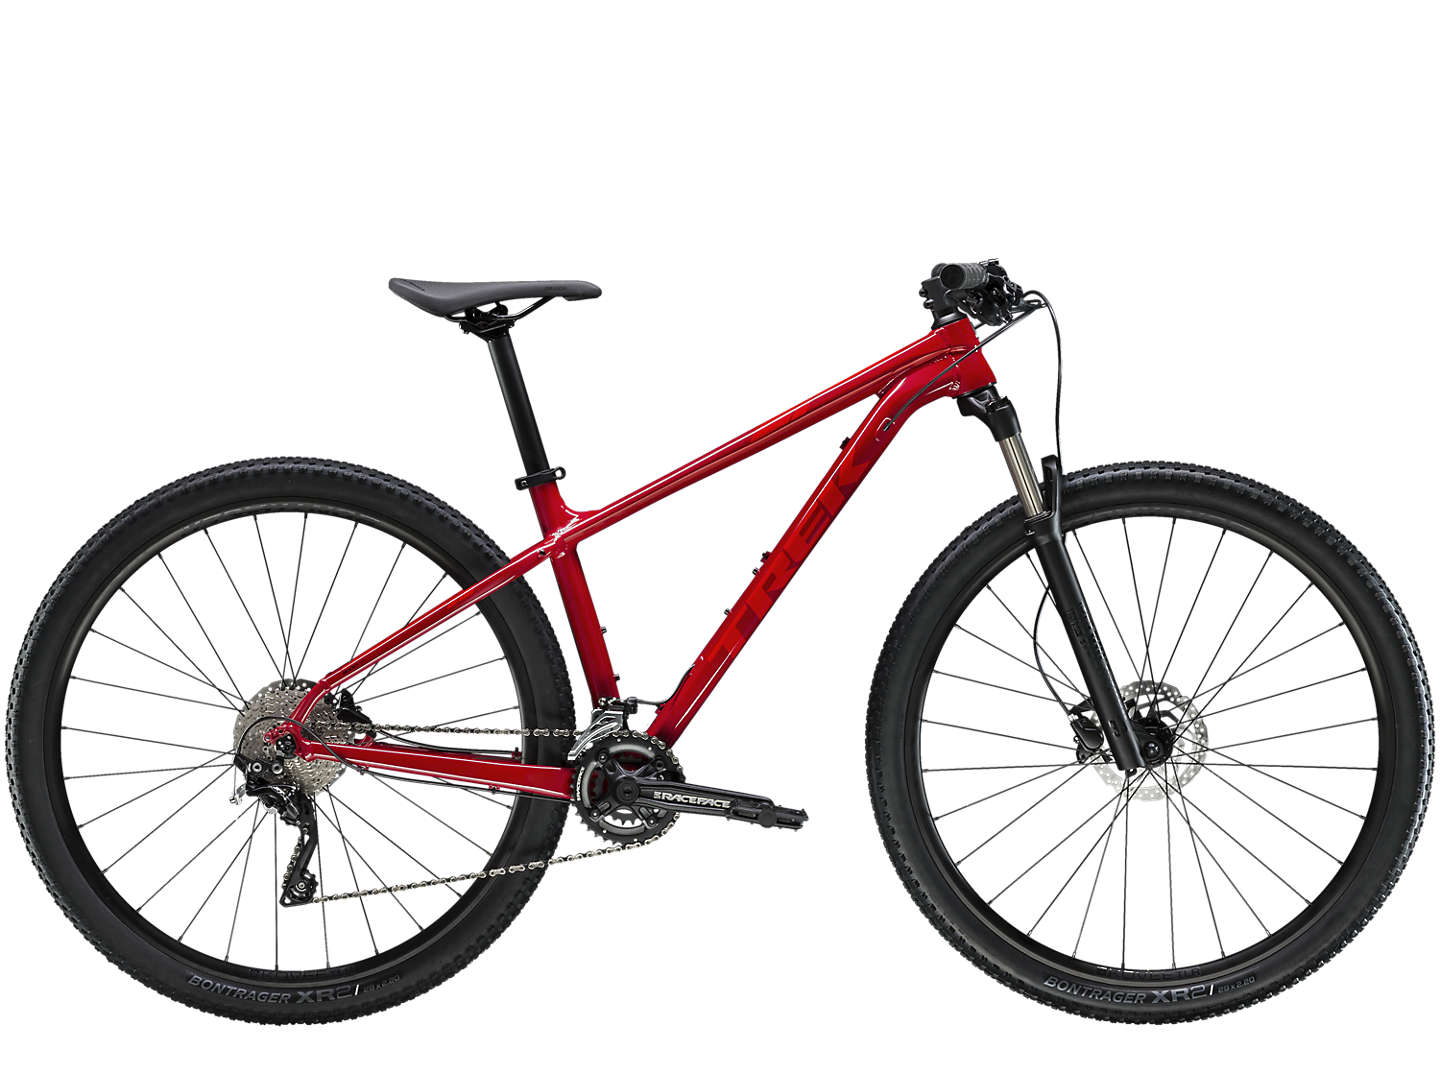 Trek X-Caliber 8 2019 Mountain Bike Cardinal £720 00